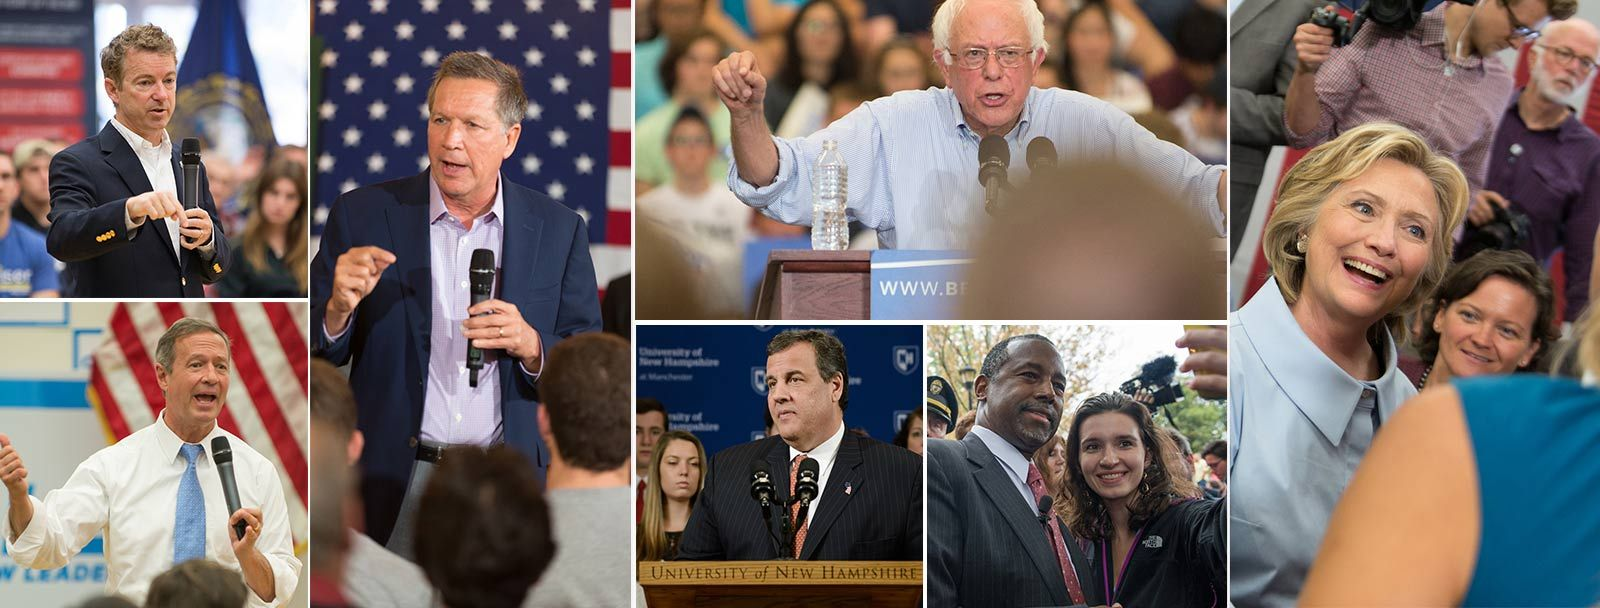 Presidential candidates on UNH campus 2016 election